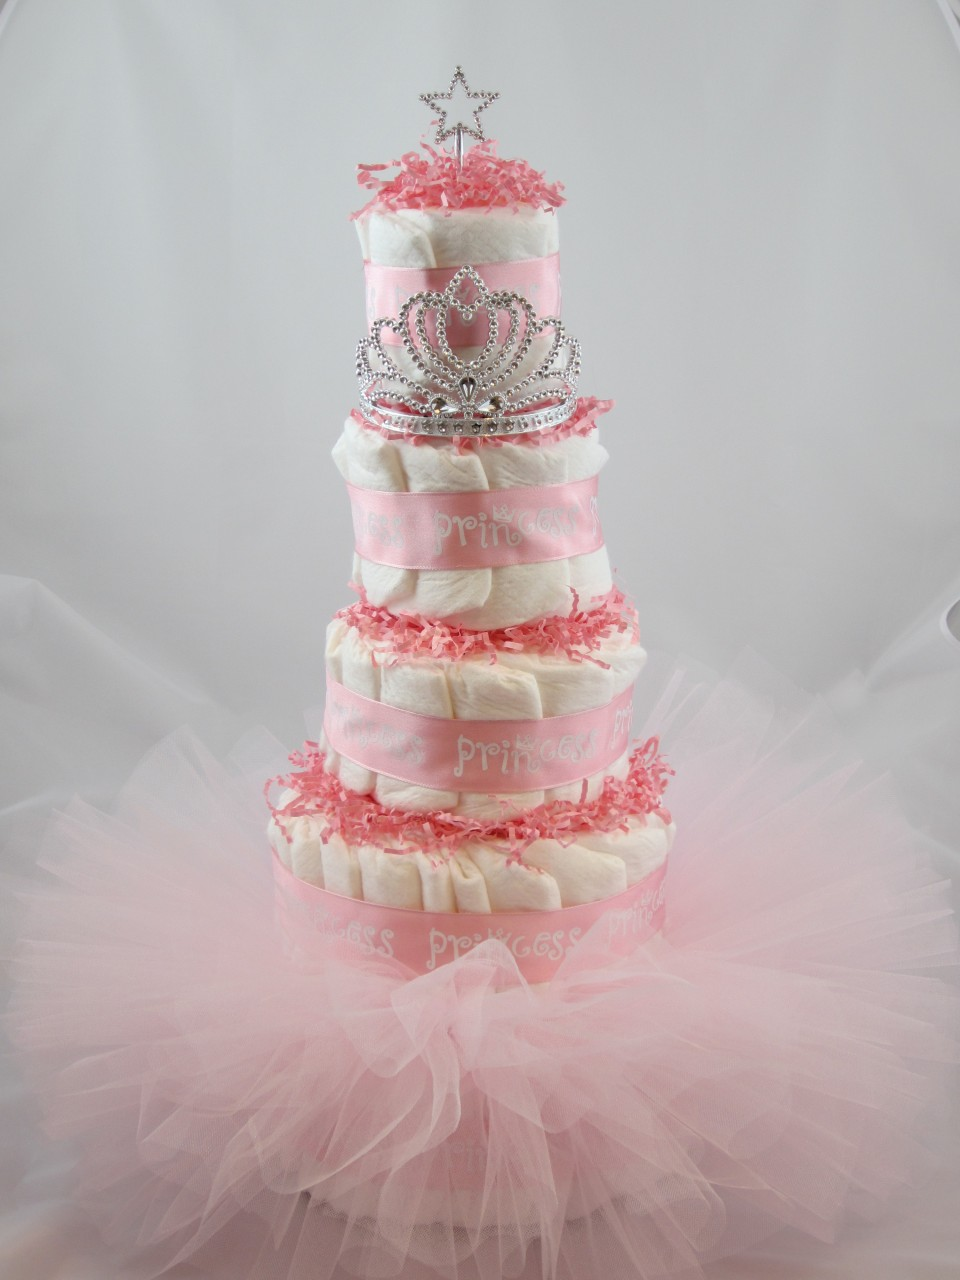 Dare to dream diaper cakes for Baby shower decoration diaper cake